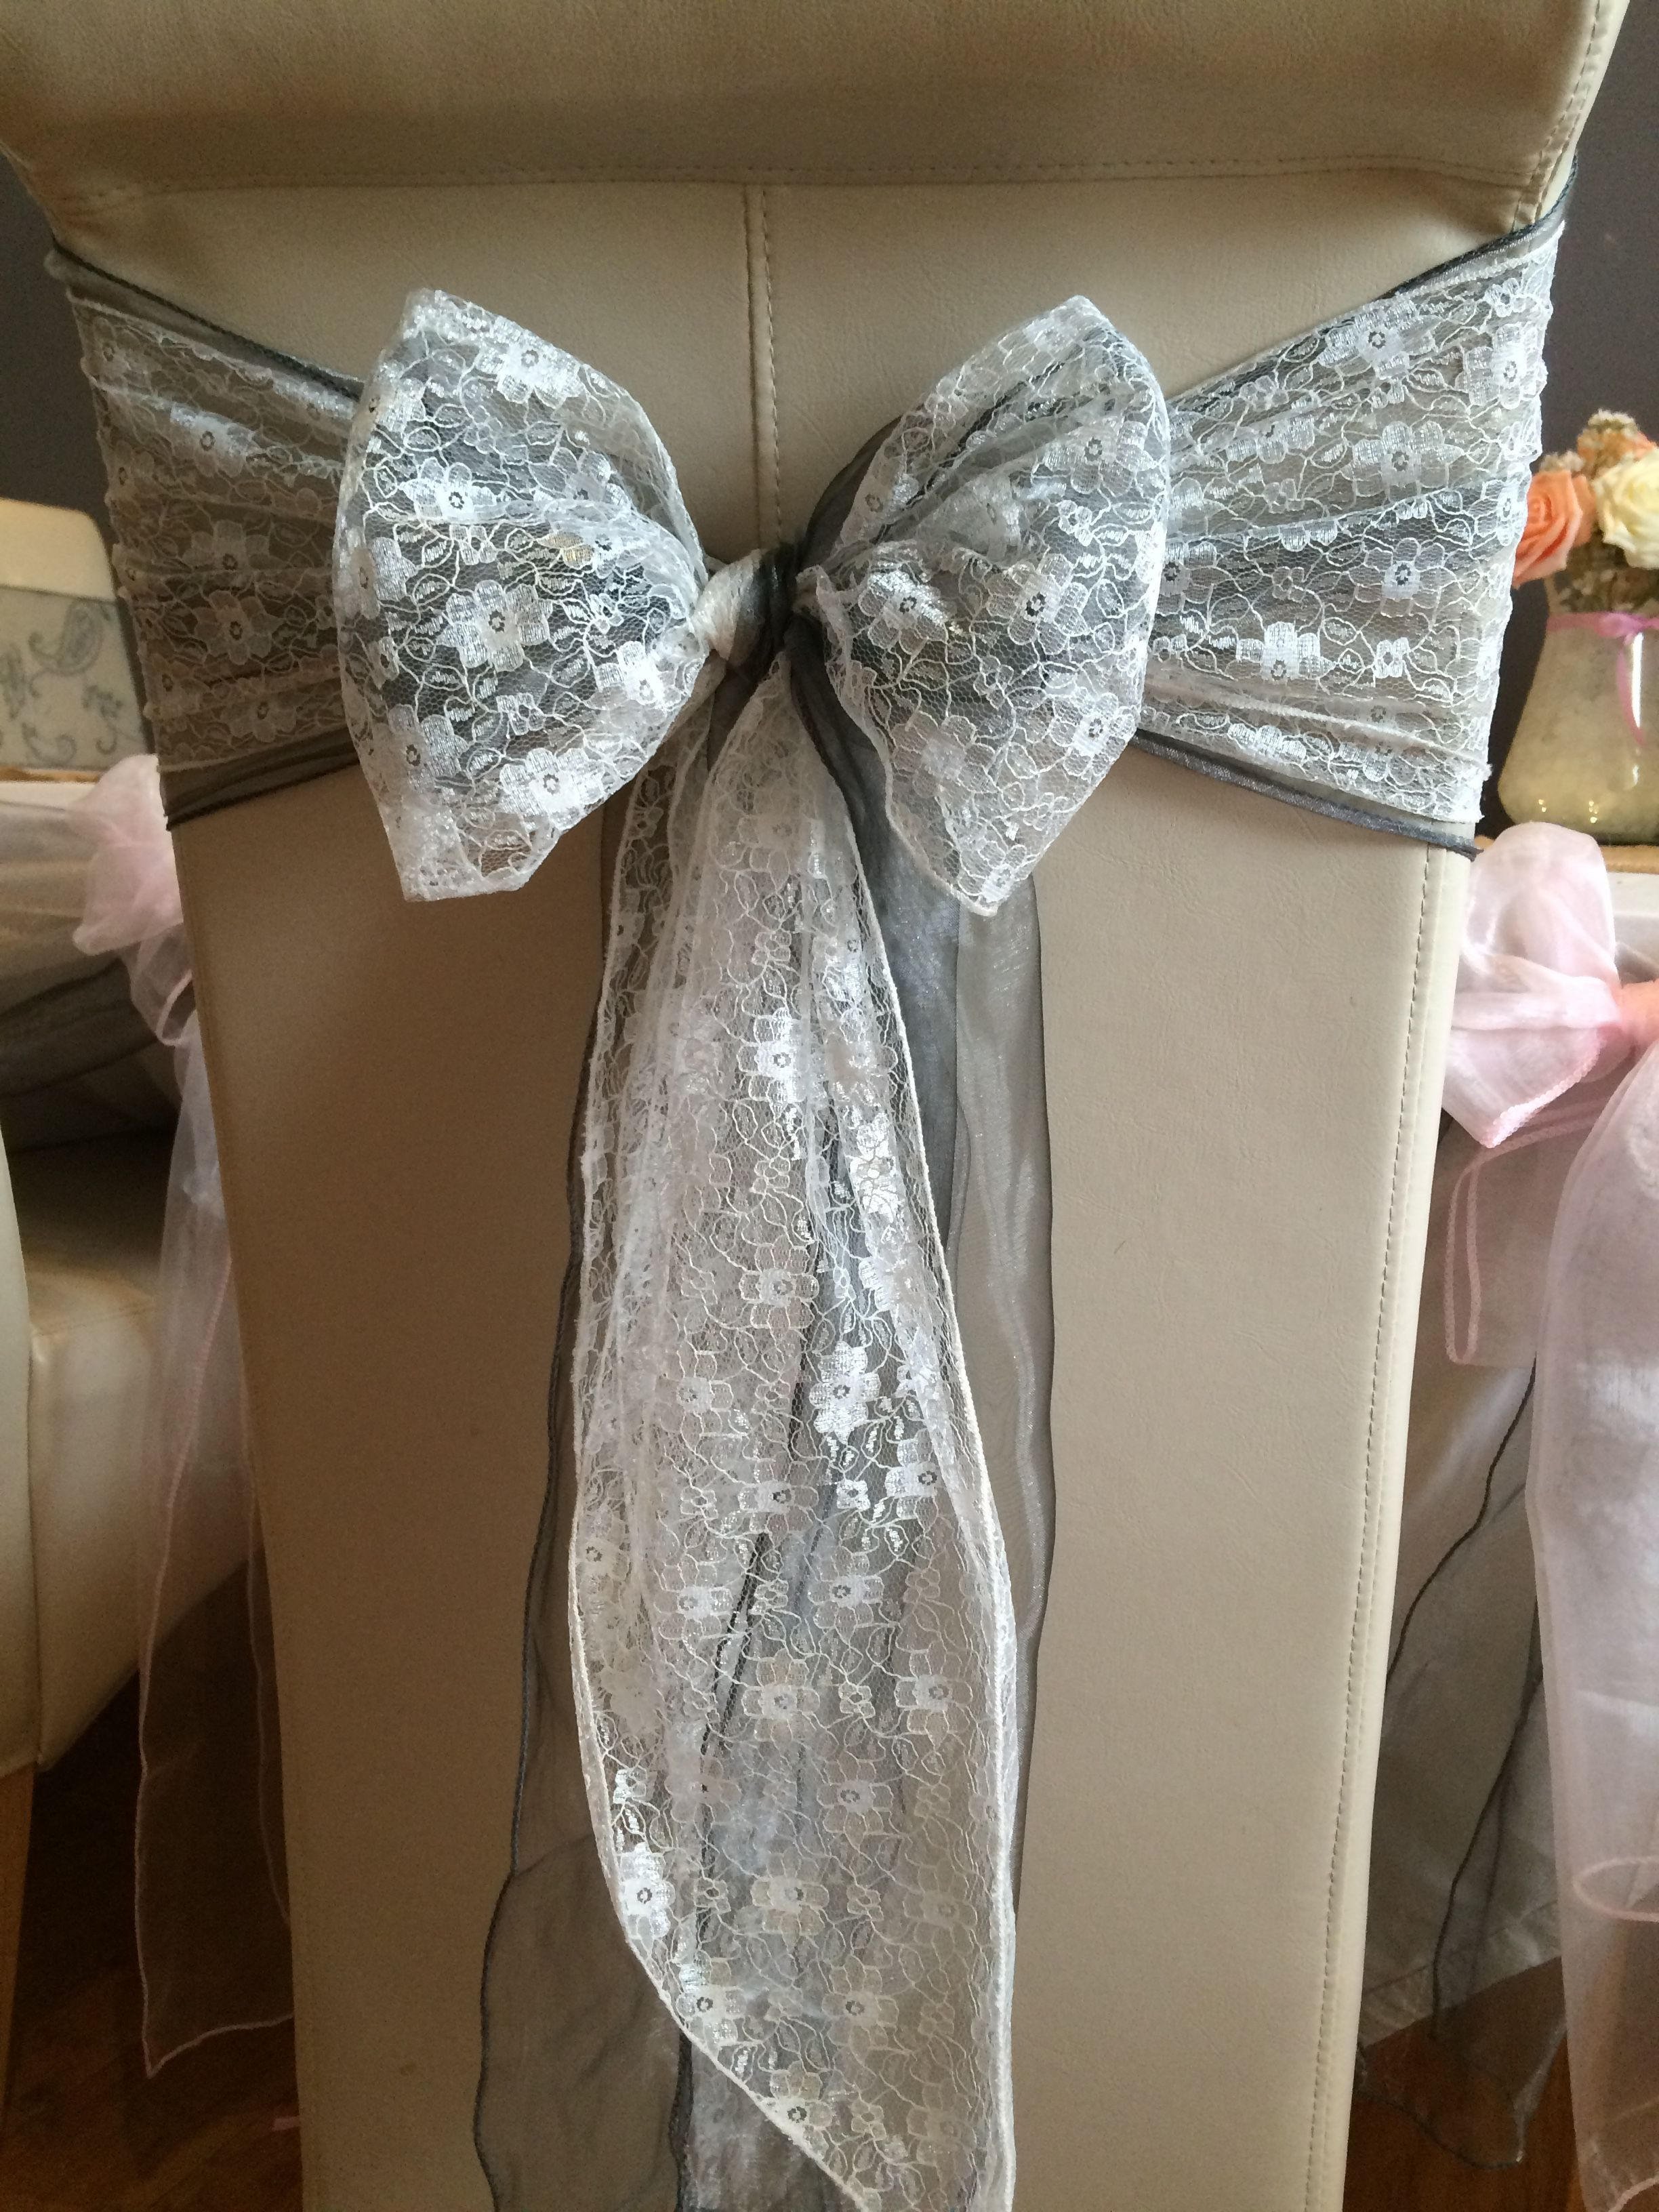 Chair Covers For Hire South Wales Reclaimed Wood Dining Chairs No Cover With Silver Grey Organza Sash And White Lace Available To